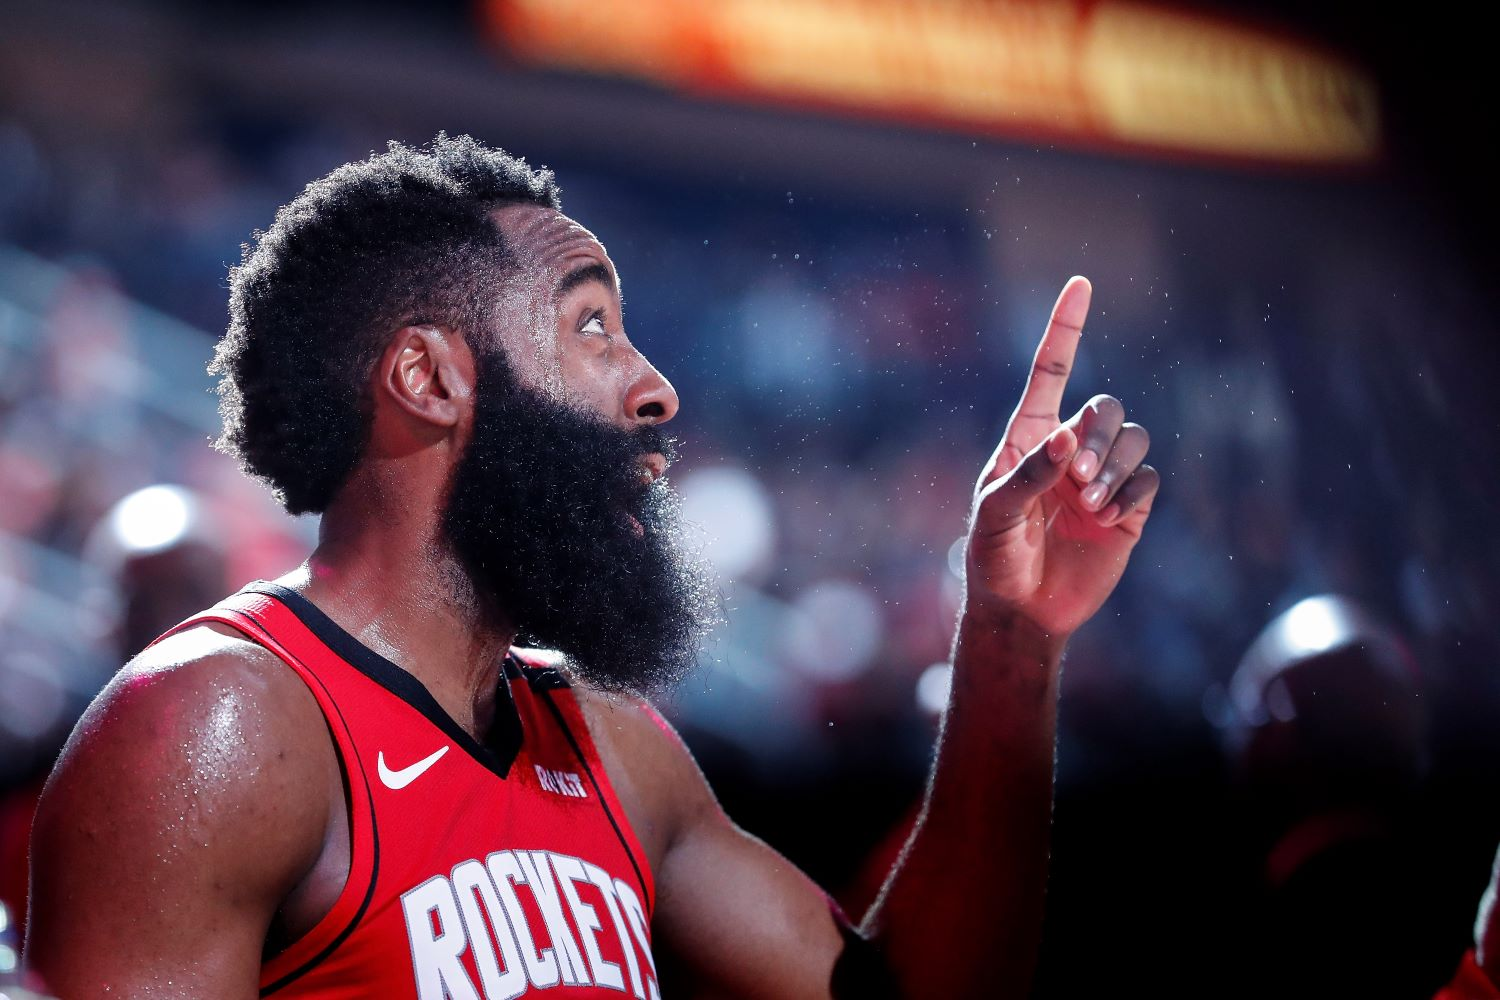 Rockets star James Harden wants out of Houston so badly that he recently added two more NBA teams to his preferred trade destination list.